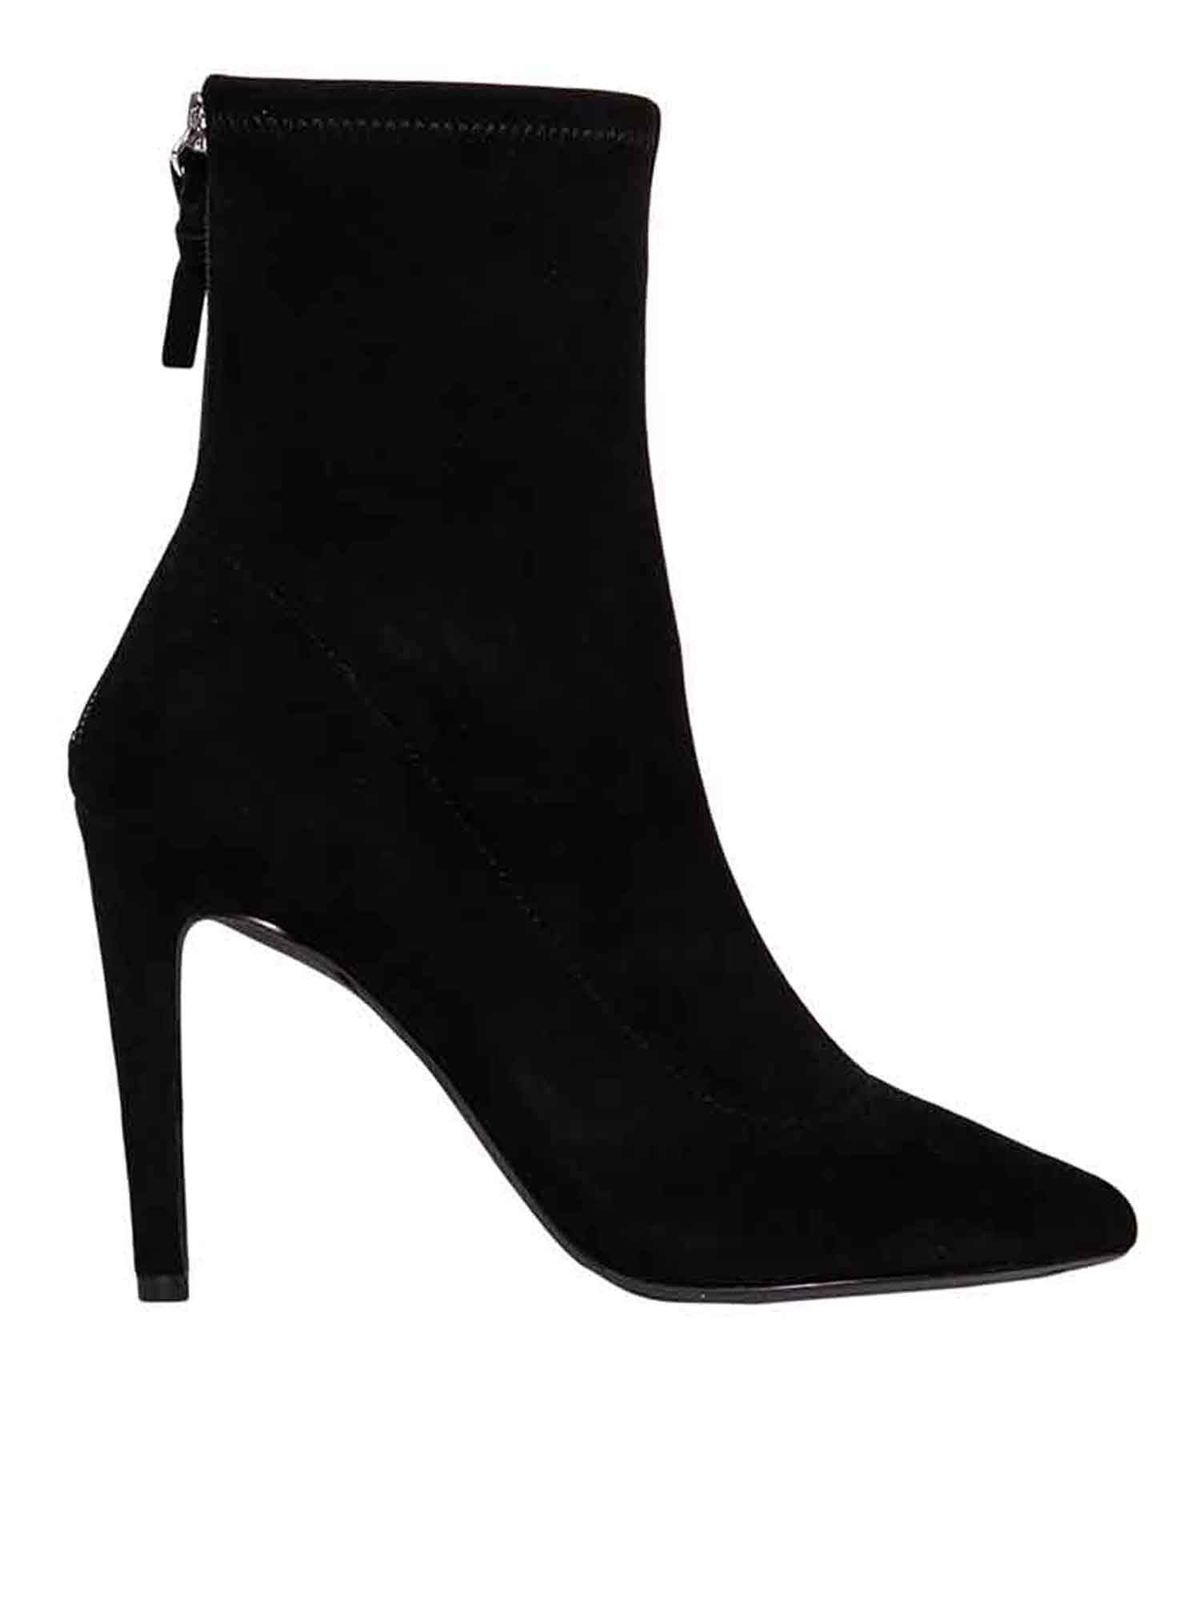 Kylie Orion High Heels Ankle Boots In